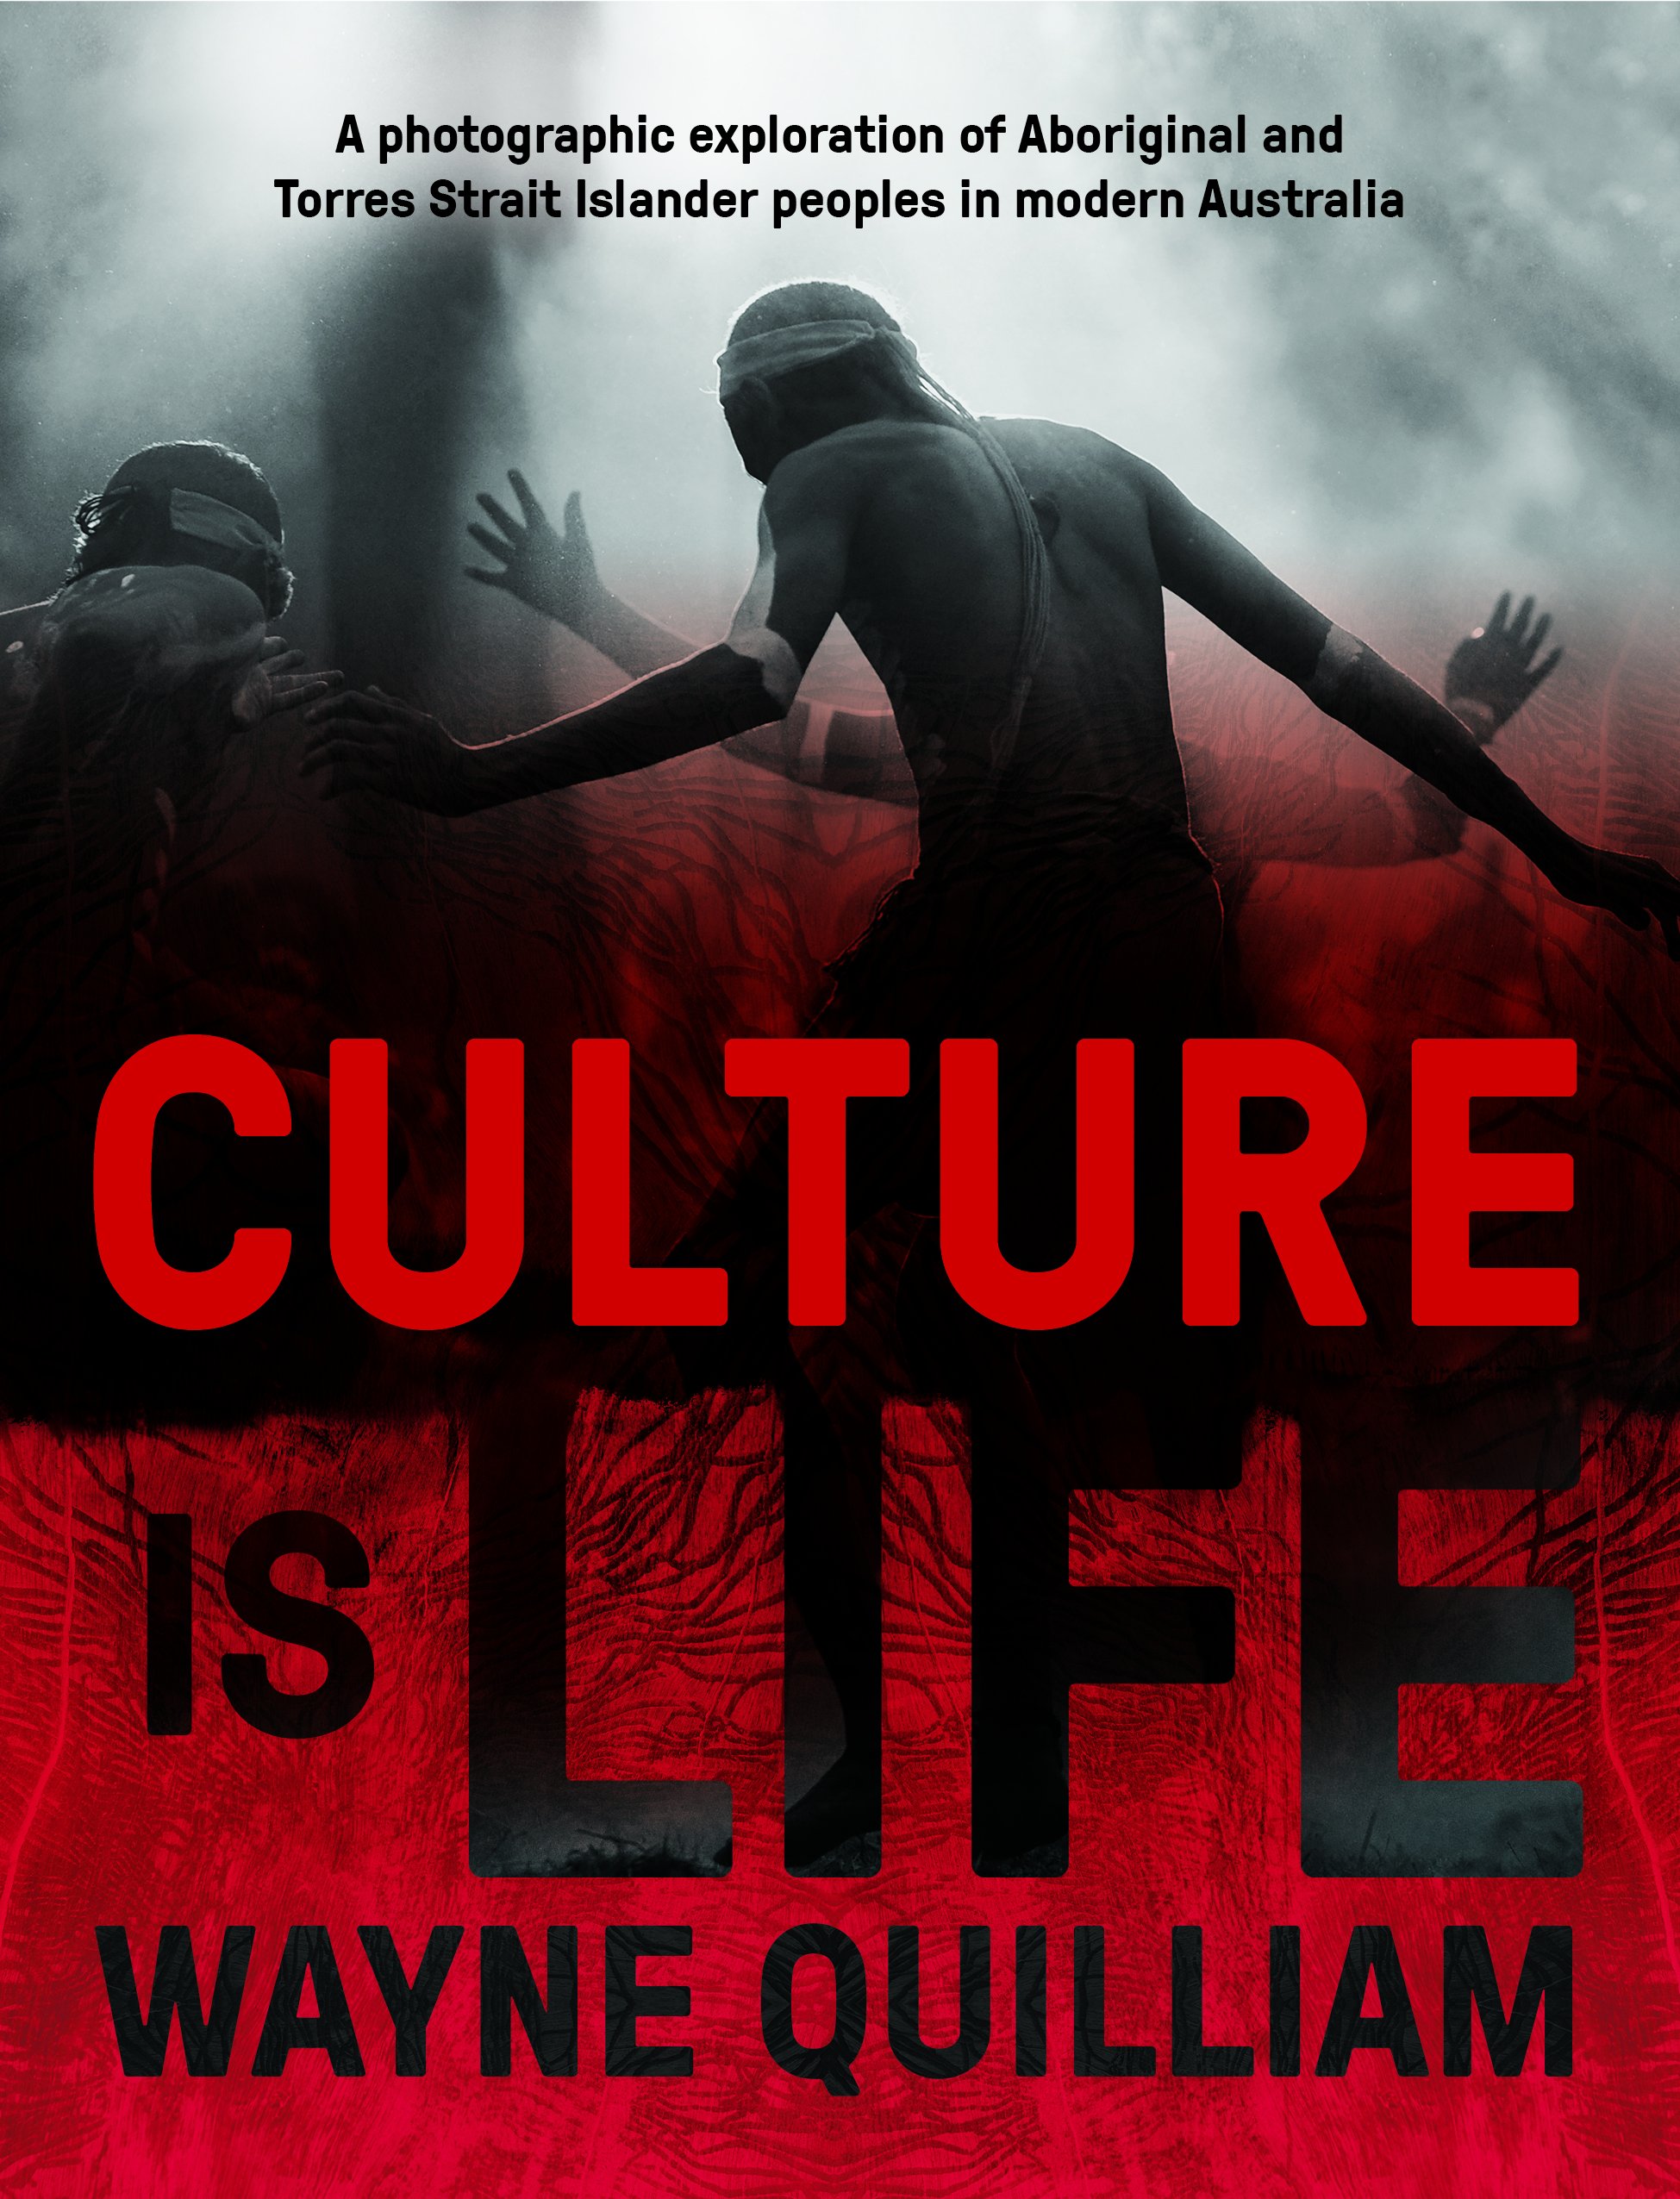 Book cover with words 'Culture is Life' and 'Wayne Quilliam' on it, in front of image of people dancing.